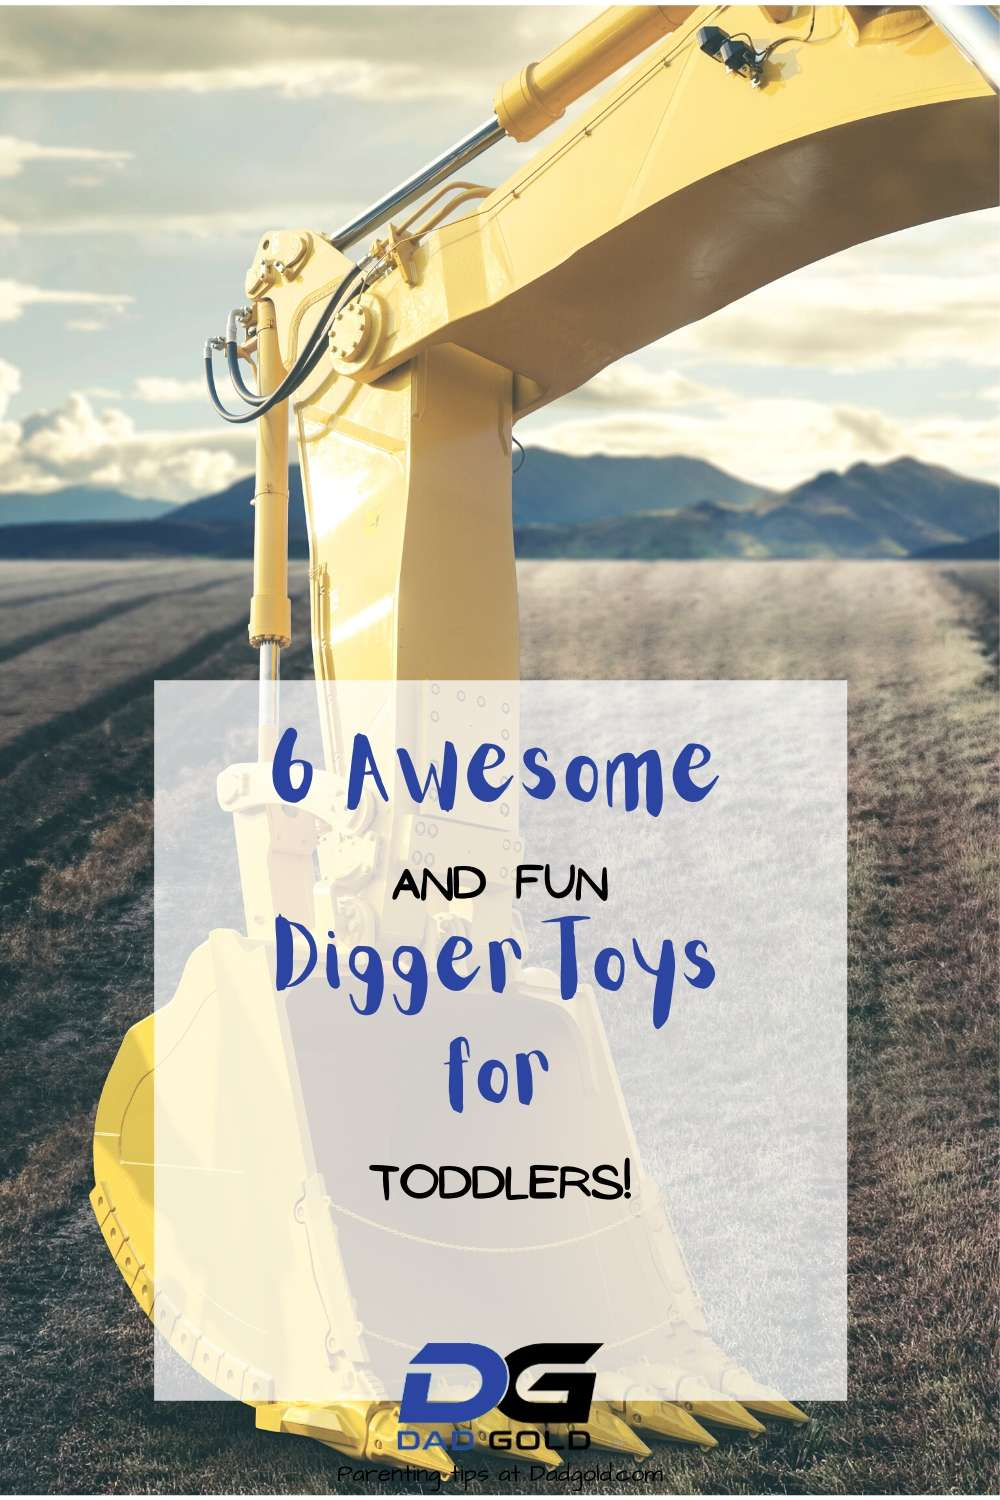 digger toys for toddlers